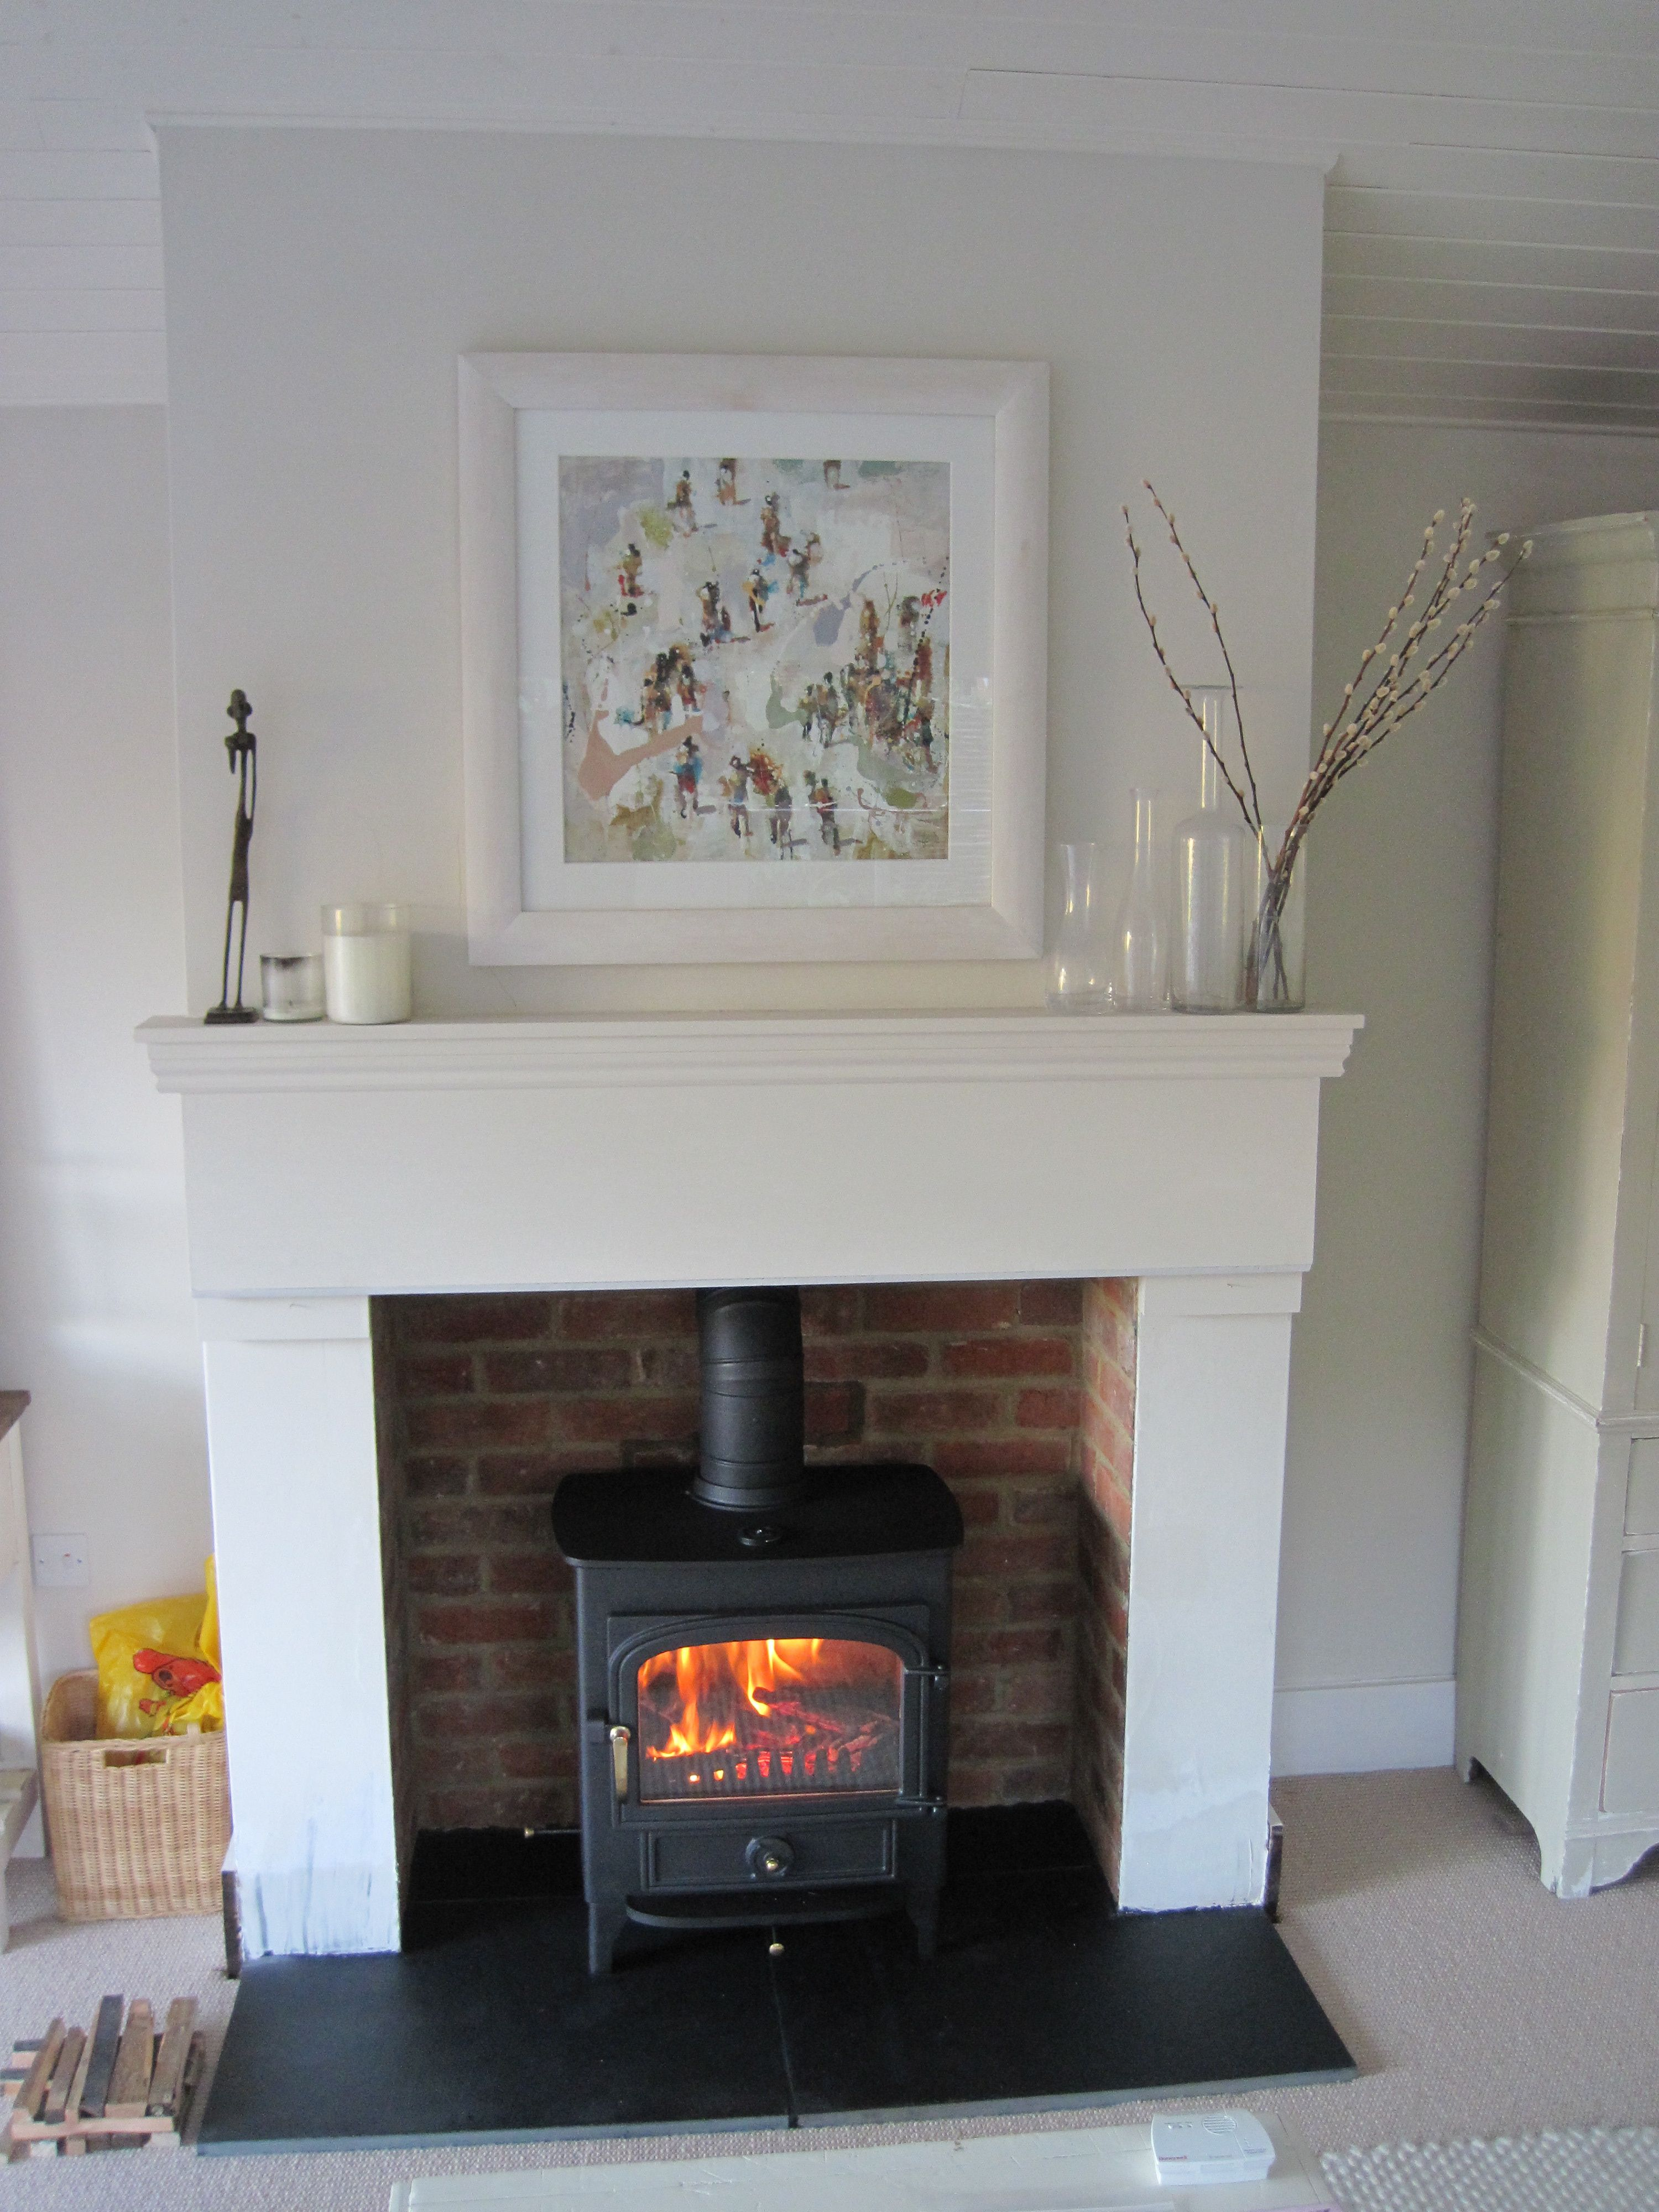 happy in vision metallic black pin surrey hearth clearview farnham and calm light rowledge set villa edwardian a airy with sandstone fireplace